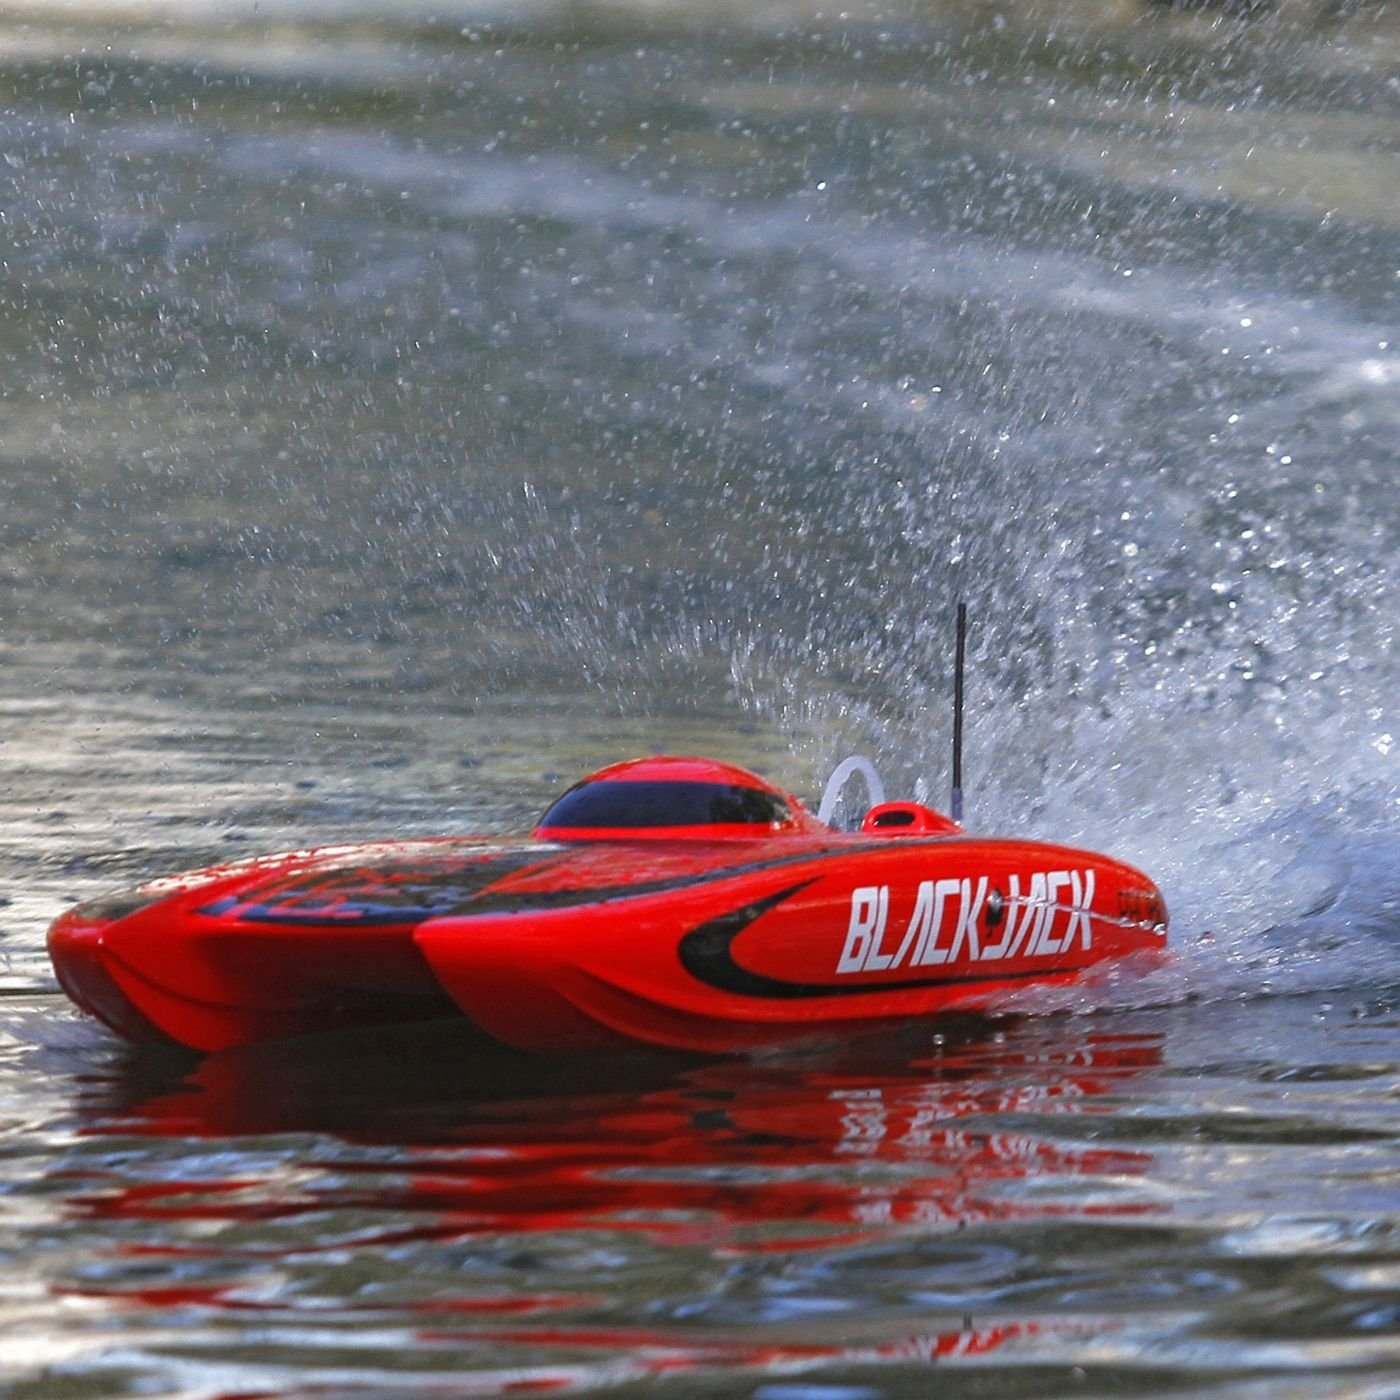 Top 8 Best RC Boats Reviews in 2021 You Should Consider Buying 5